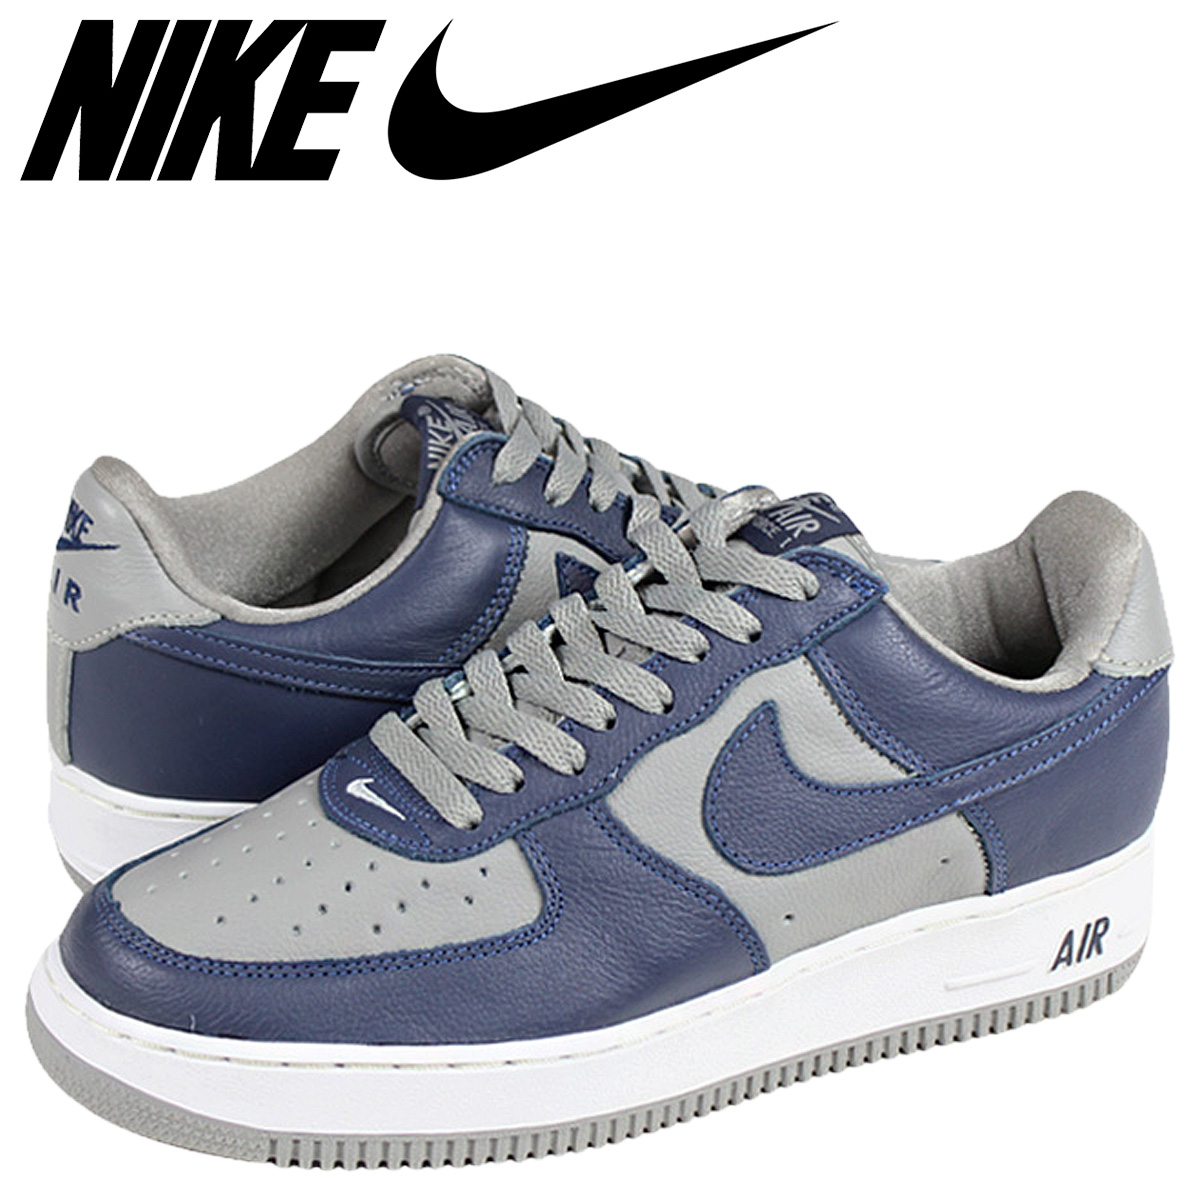 huge selection of e73ec 81f04 NIKE Nike air force sneakers AIR FORCE 1 LOW air force atto- MOS suggestion  color 630,033-044 gray men